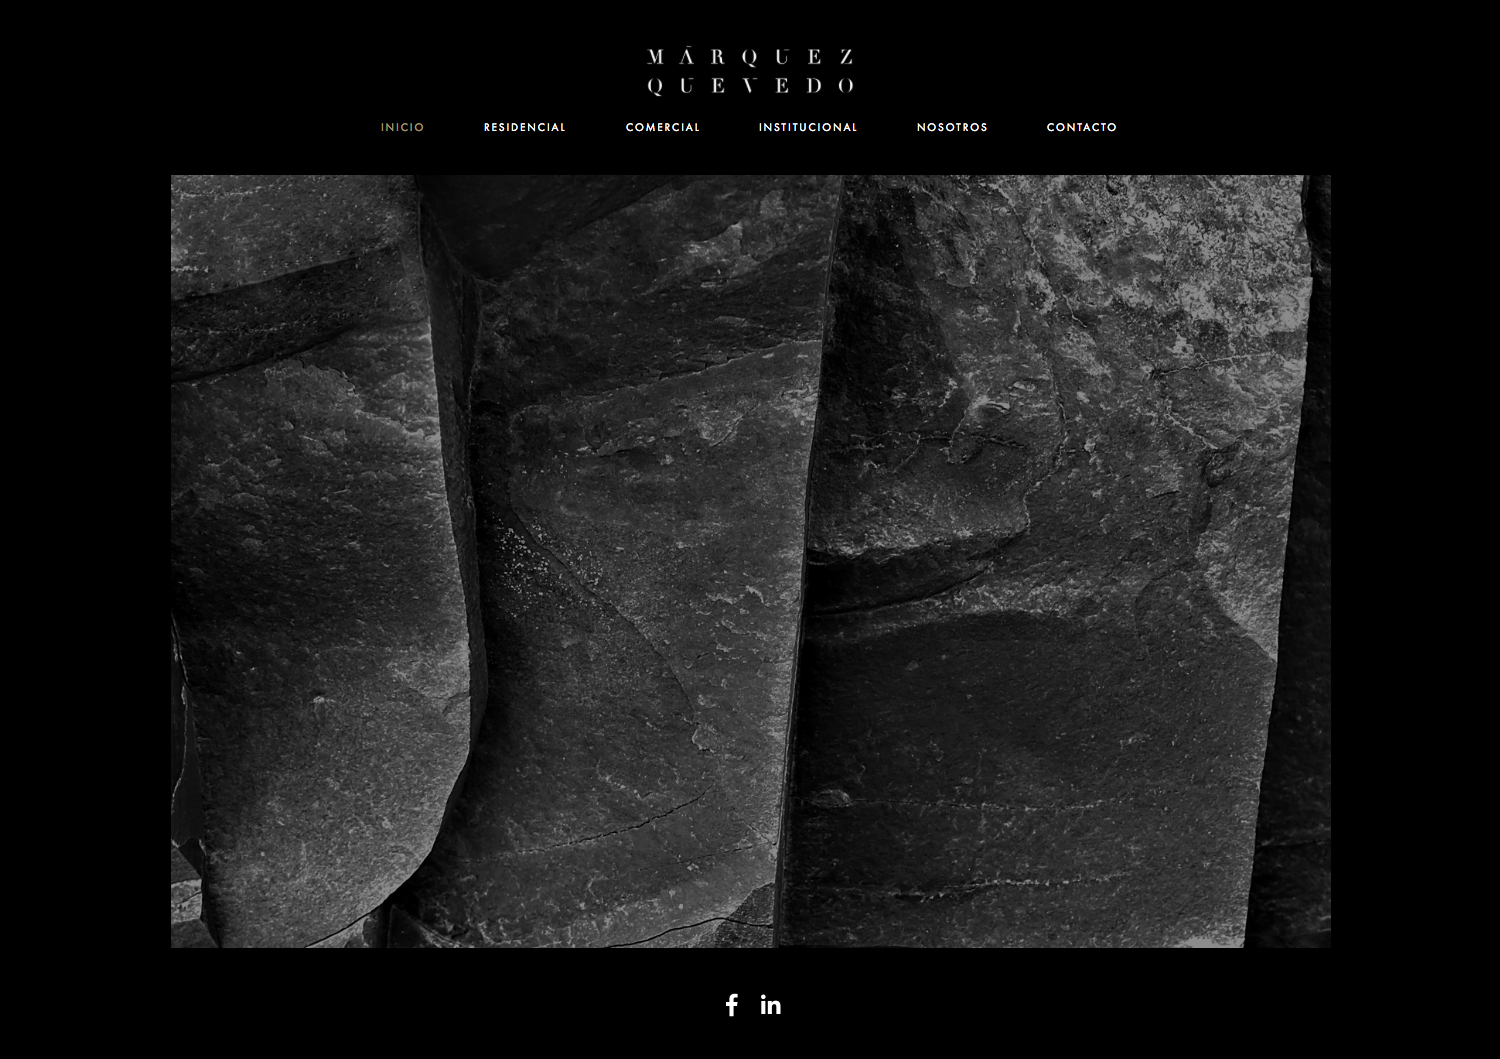 Brand identity and website for Mexican architectural studio Marquez Quevedo by La Tortillería